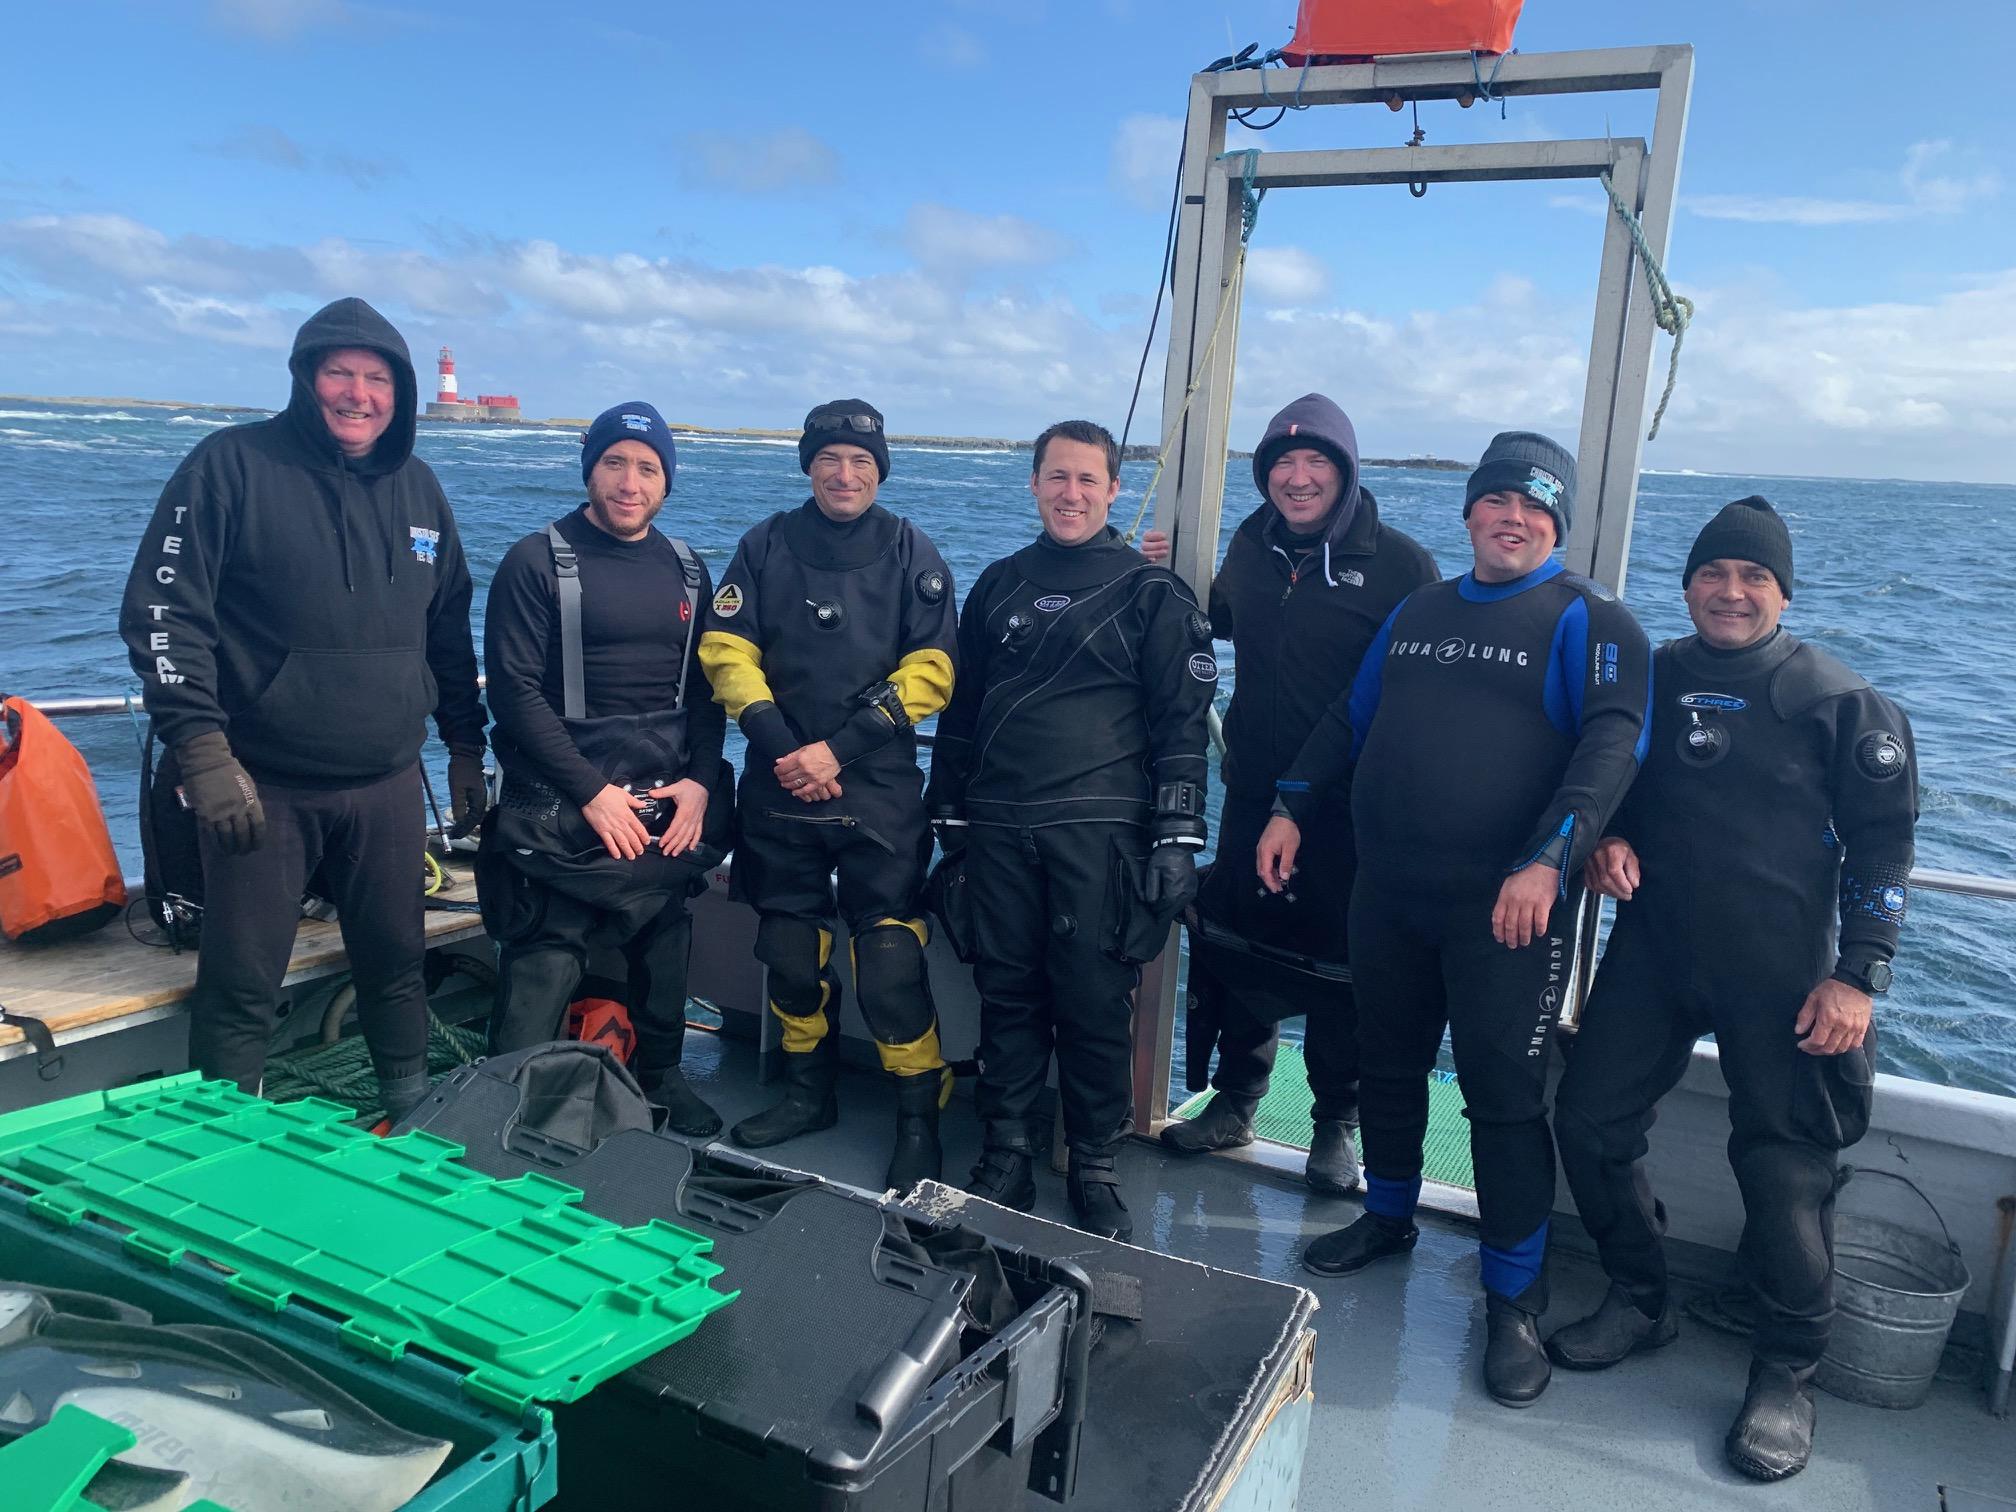 dive group on boat